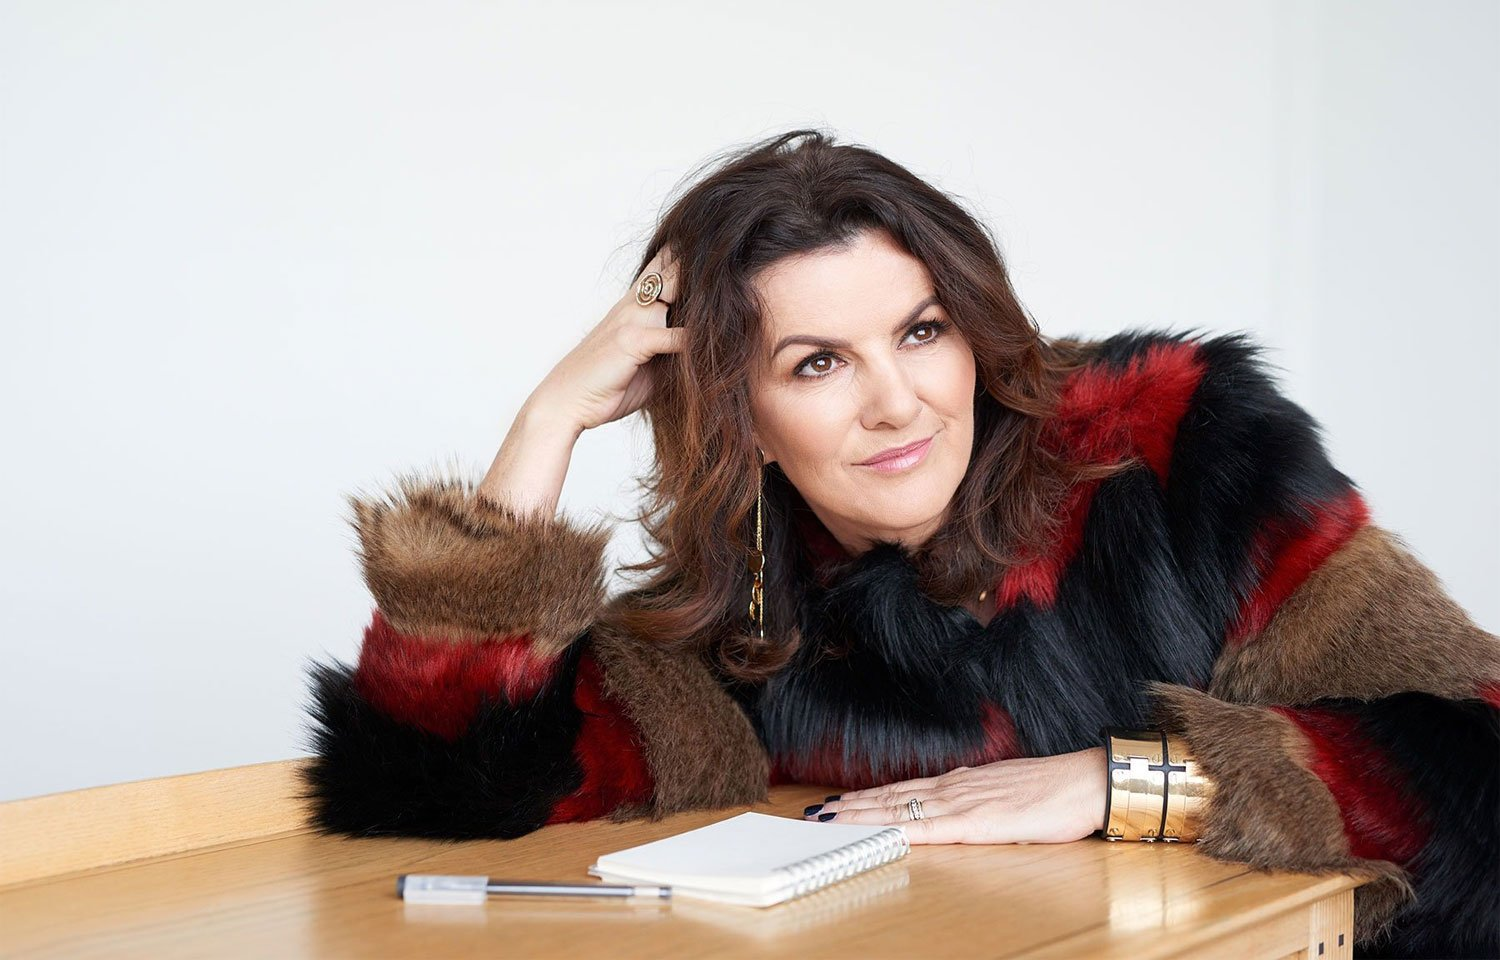 DEIRDRE O'KANE TO HOST SKY ONE STAND-UP COMEDY SERIES